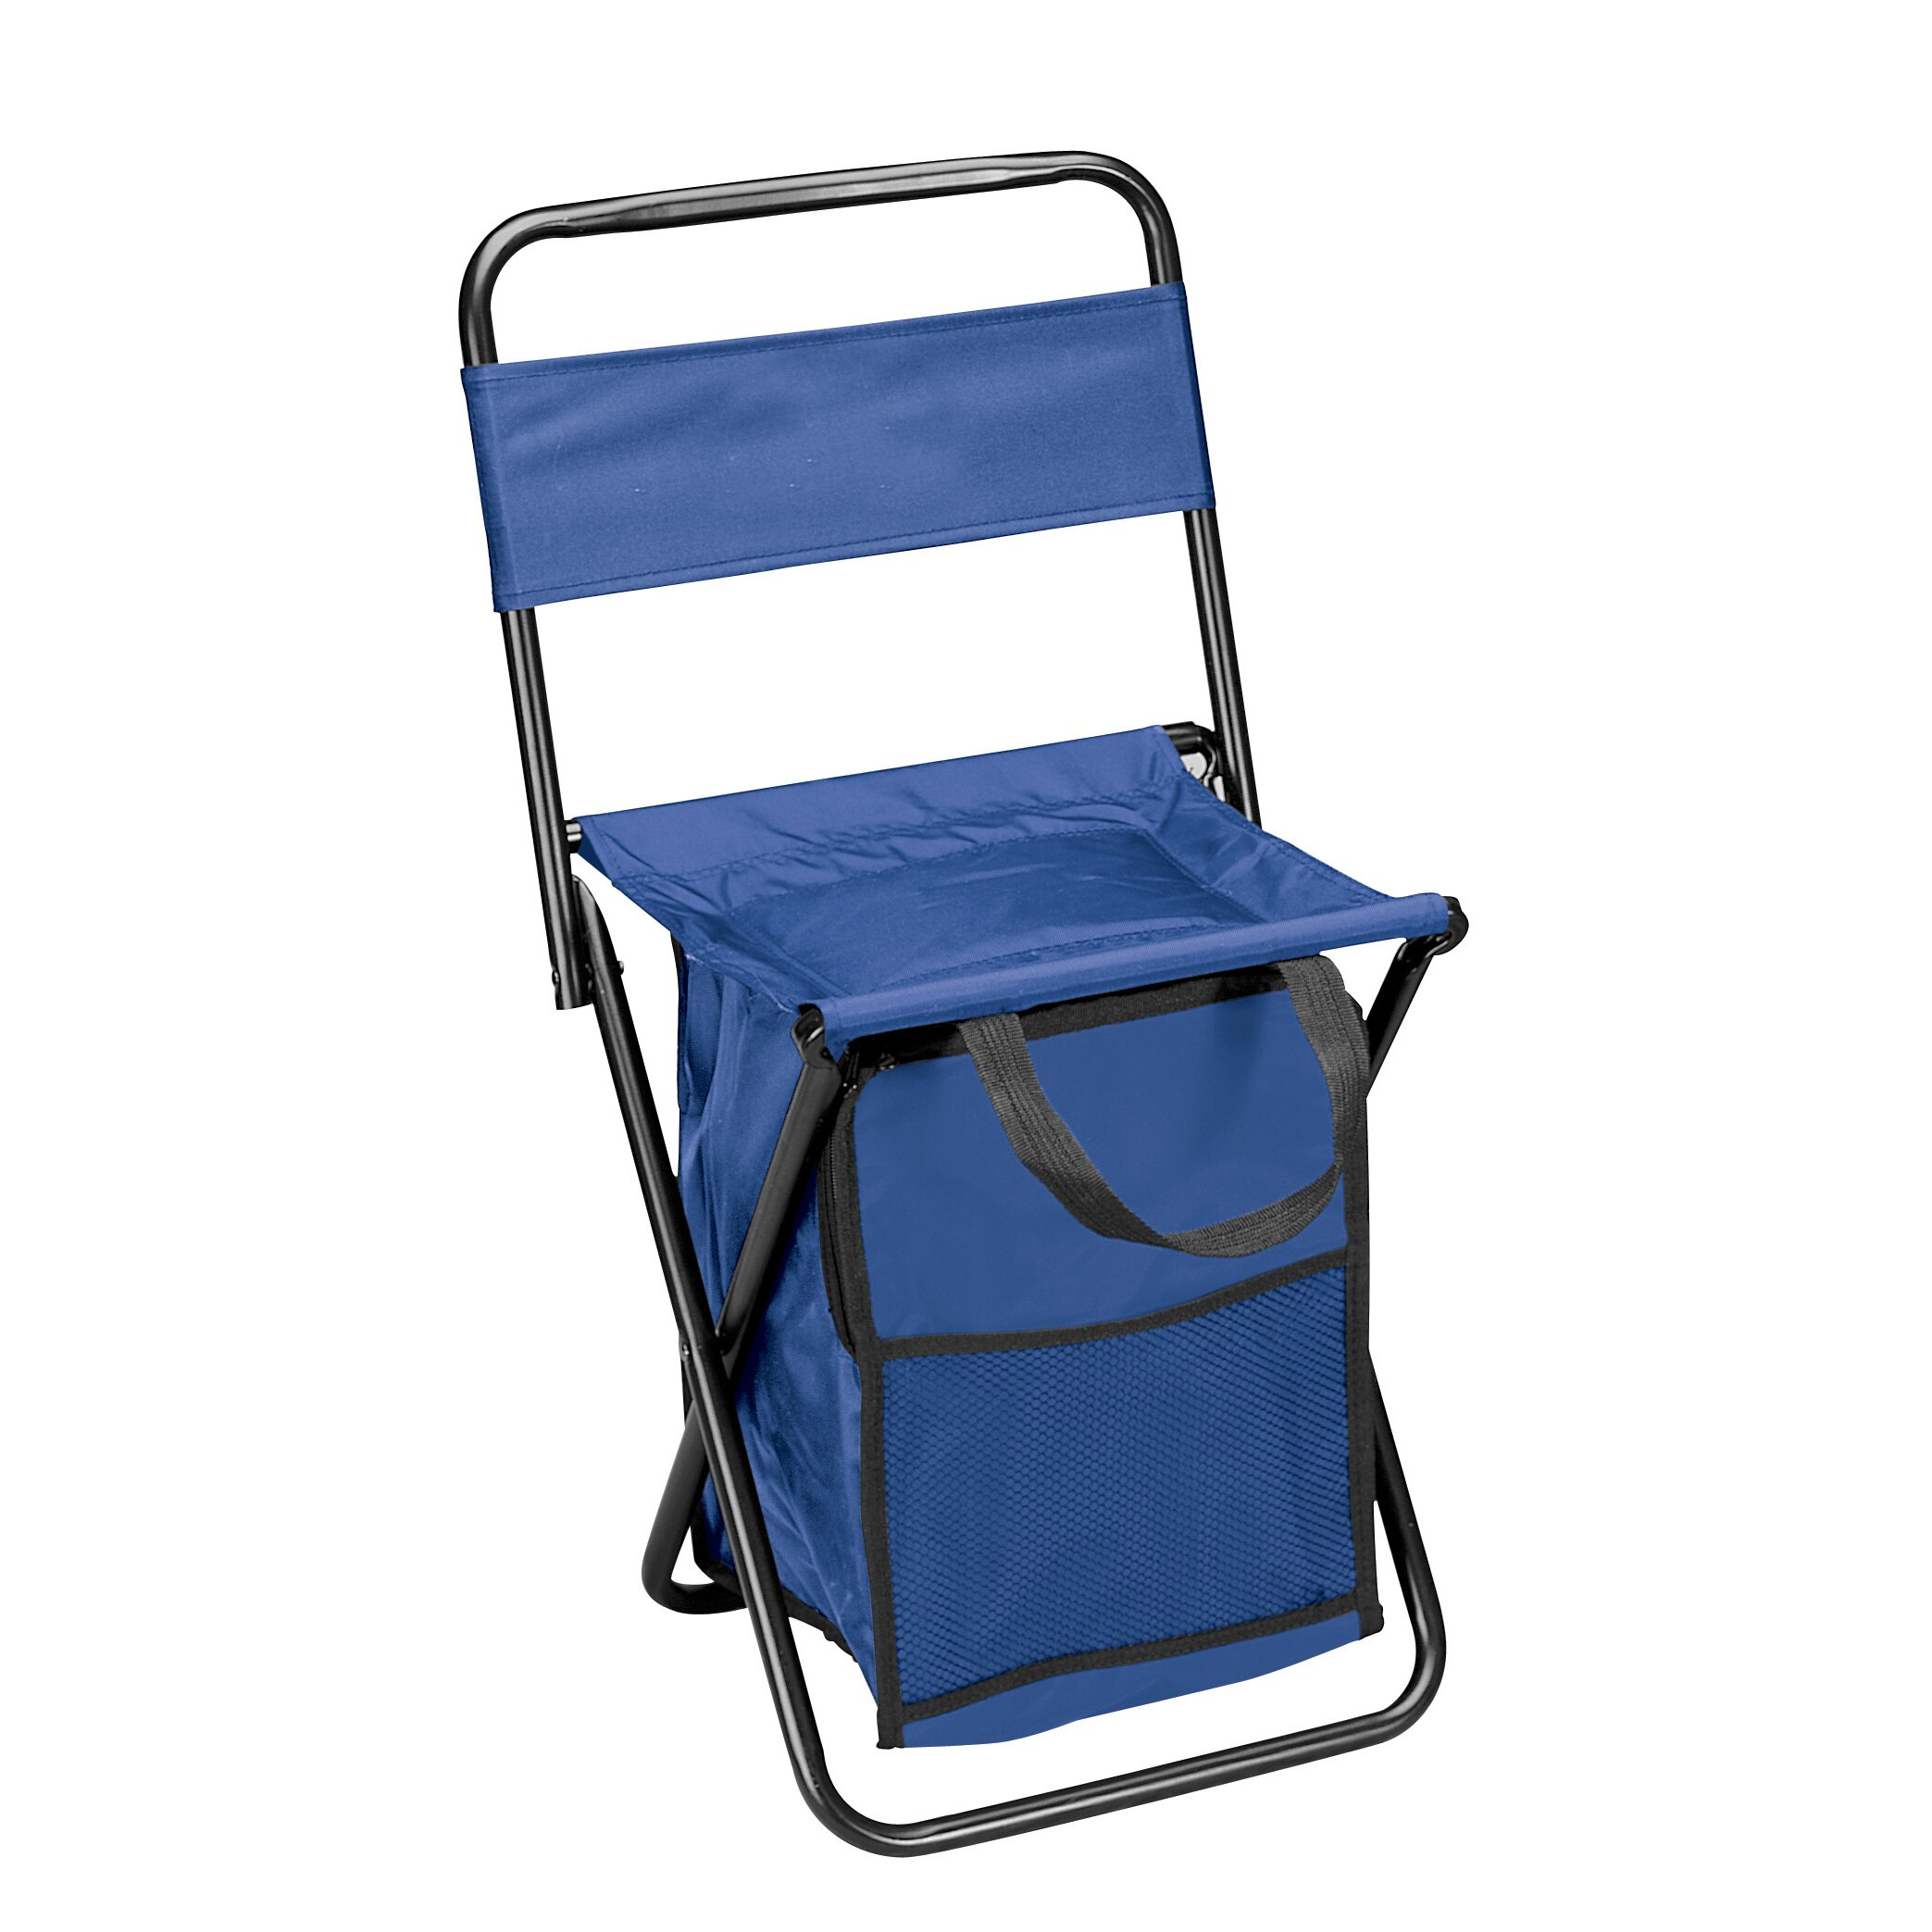 Preferred Nation Folding Chair with Cooler & Reviews